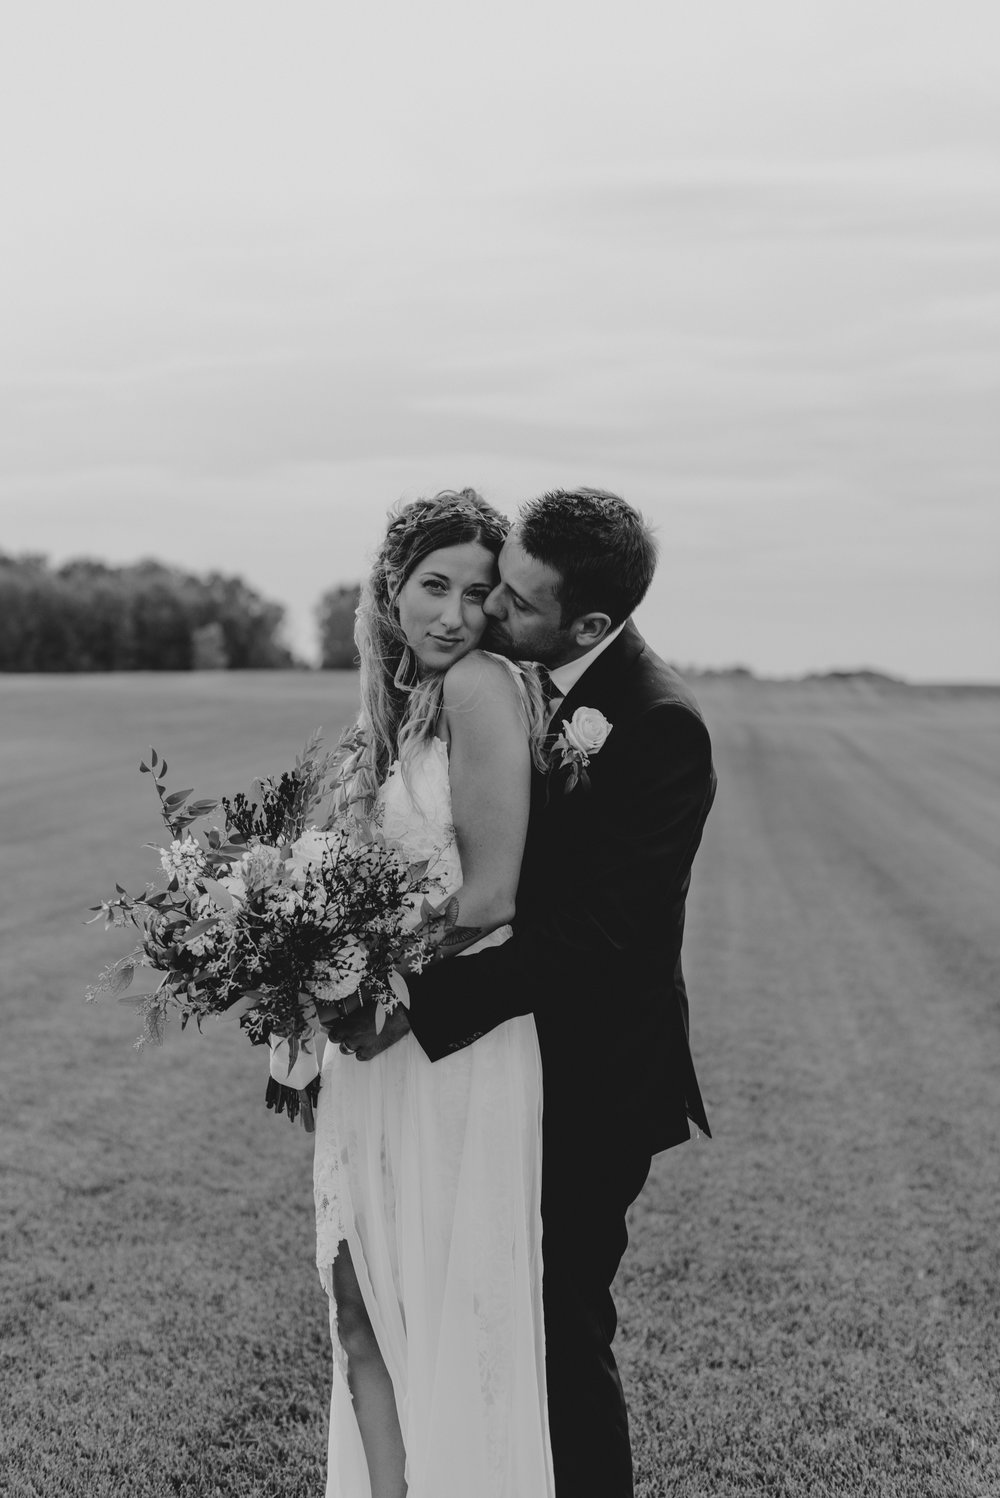 RosewoodWeddingPhotos-LondonWedding-KylieAlex-1435-SelfishThings-BohoFarmWedding-GraceLovesLace